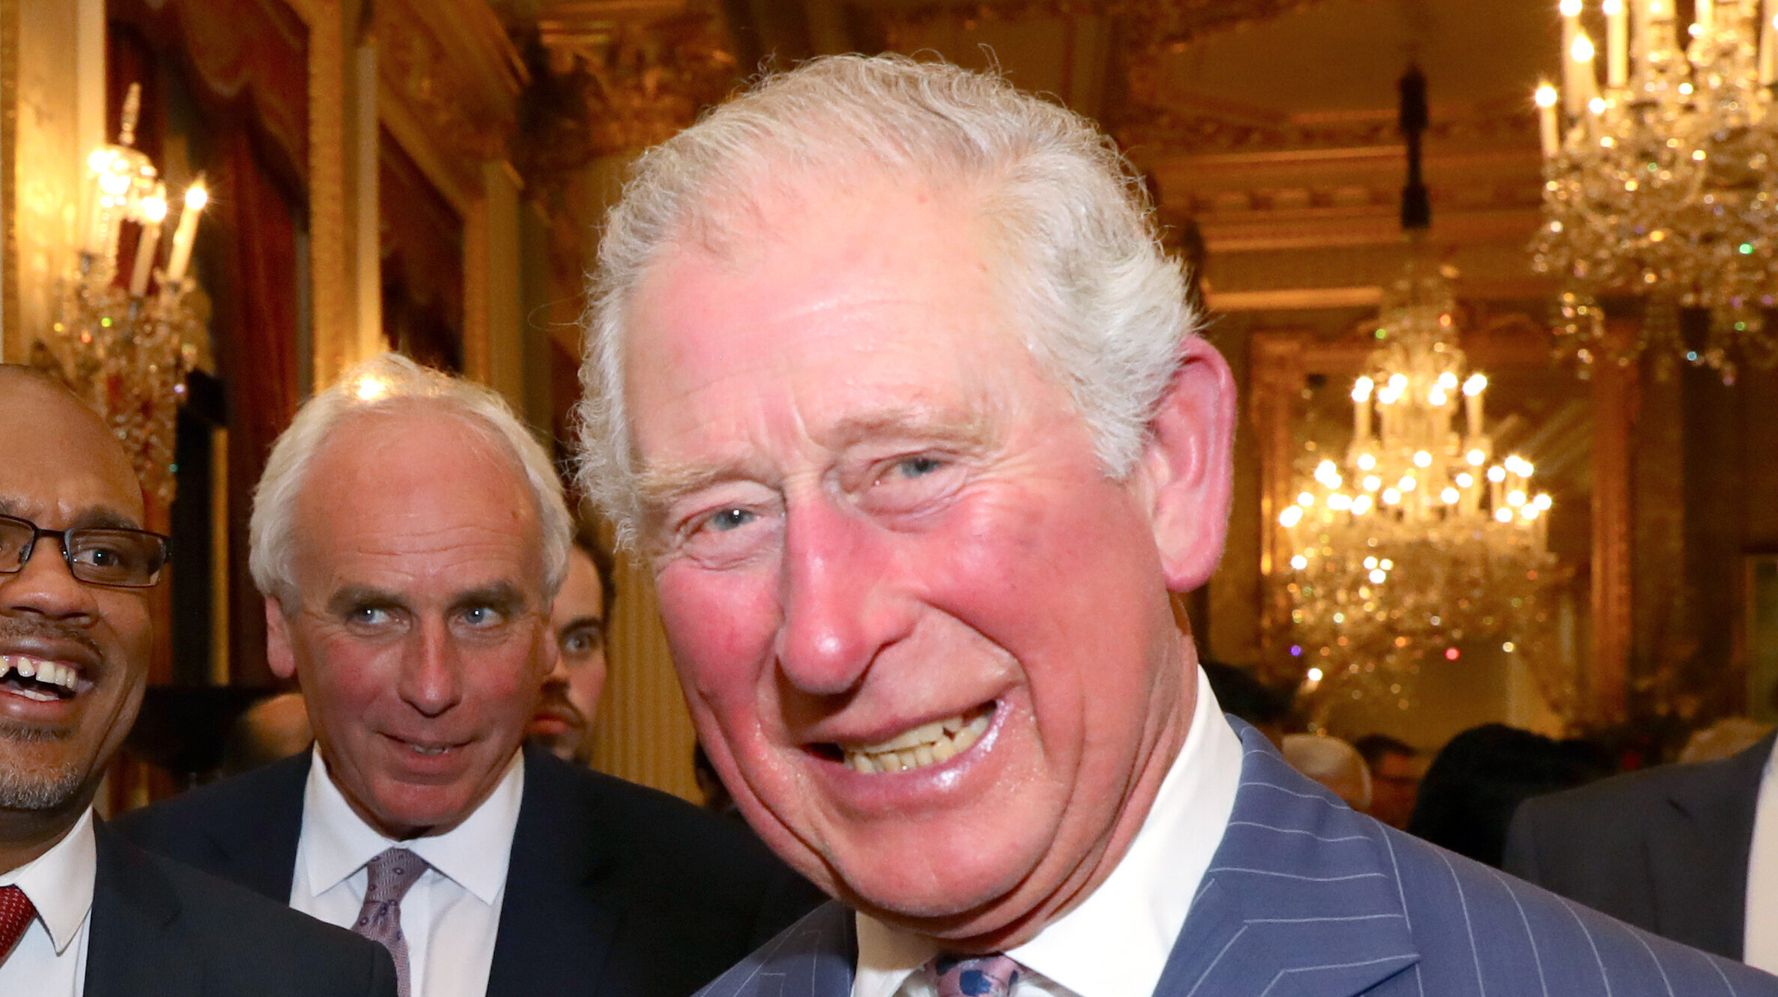 Prince Charles Is Out Of Self-Isolation And 'In Good Health' After Positive Coronavirus Test - HuffPost